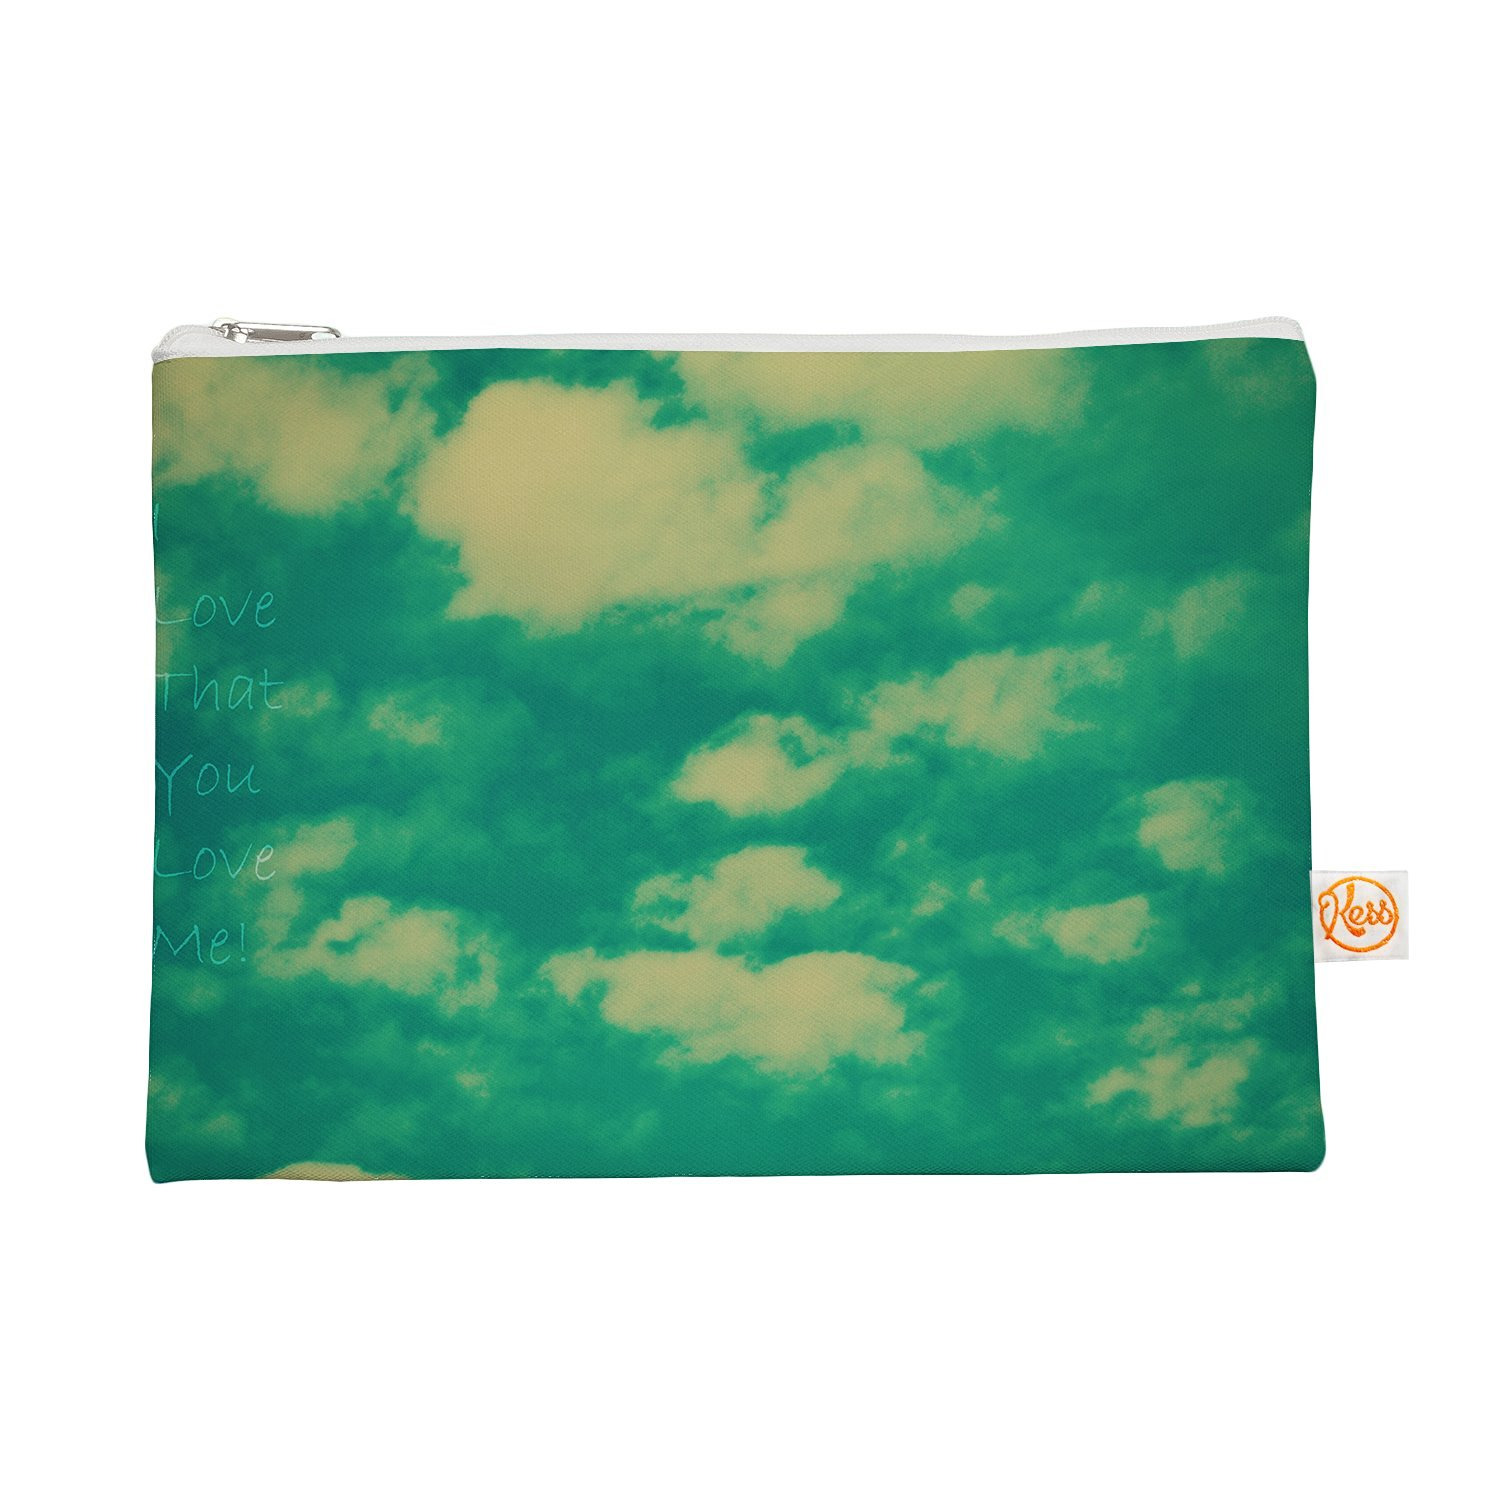 """Kess InHouse """"I Love That You Love Me"""" Everything Bag, 12.5"""" x 8.5"""", Green Blue (RD1078AEP02)"""